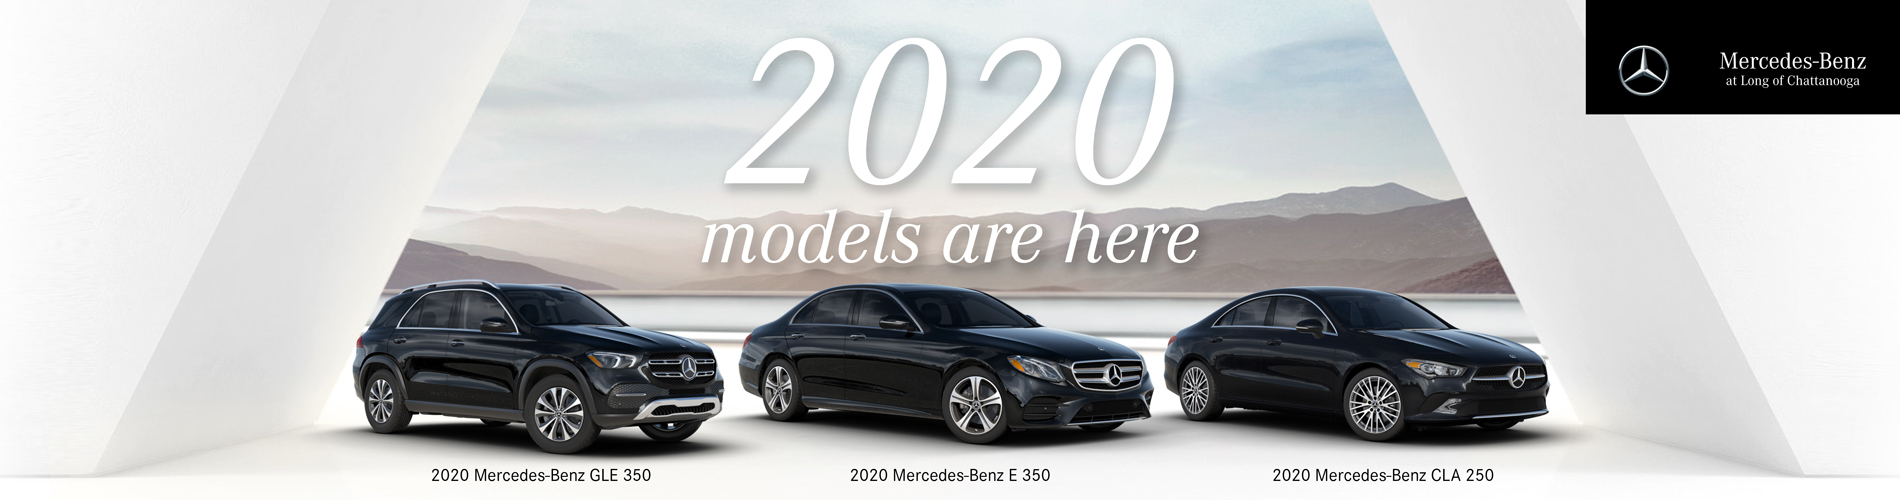 2020 Models are here